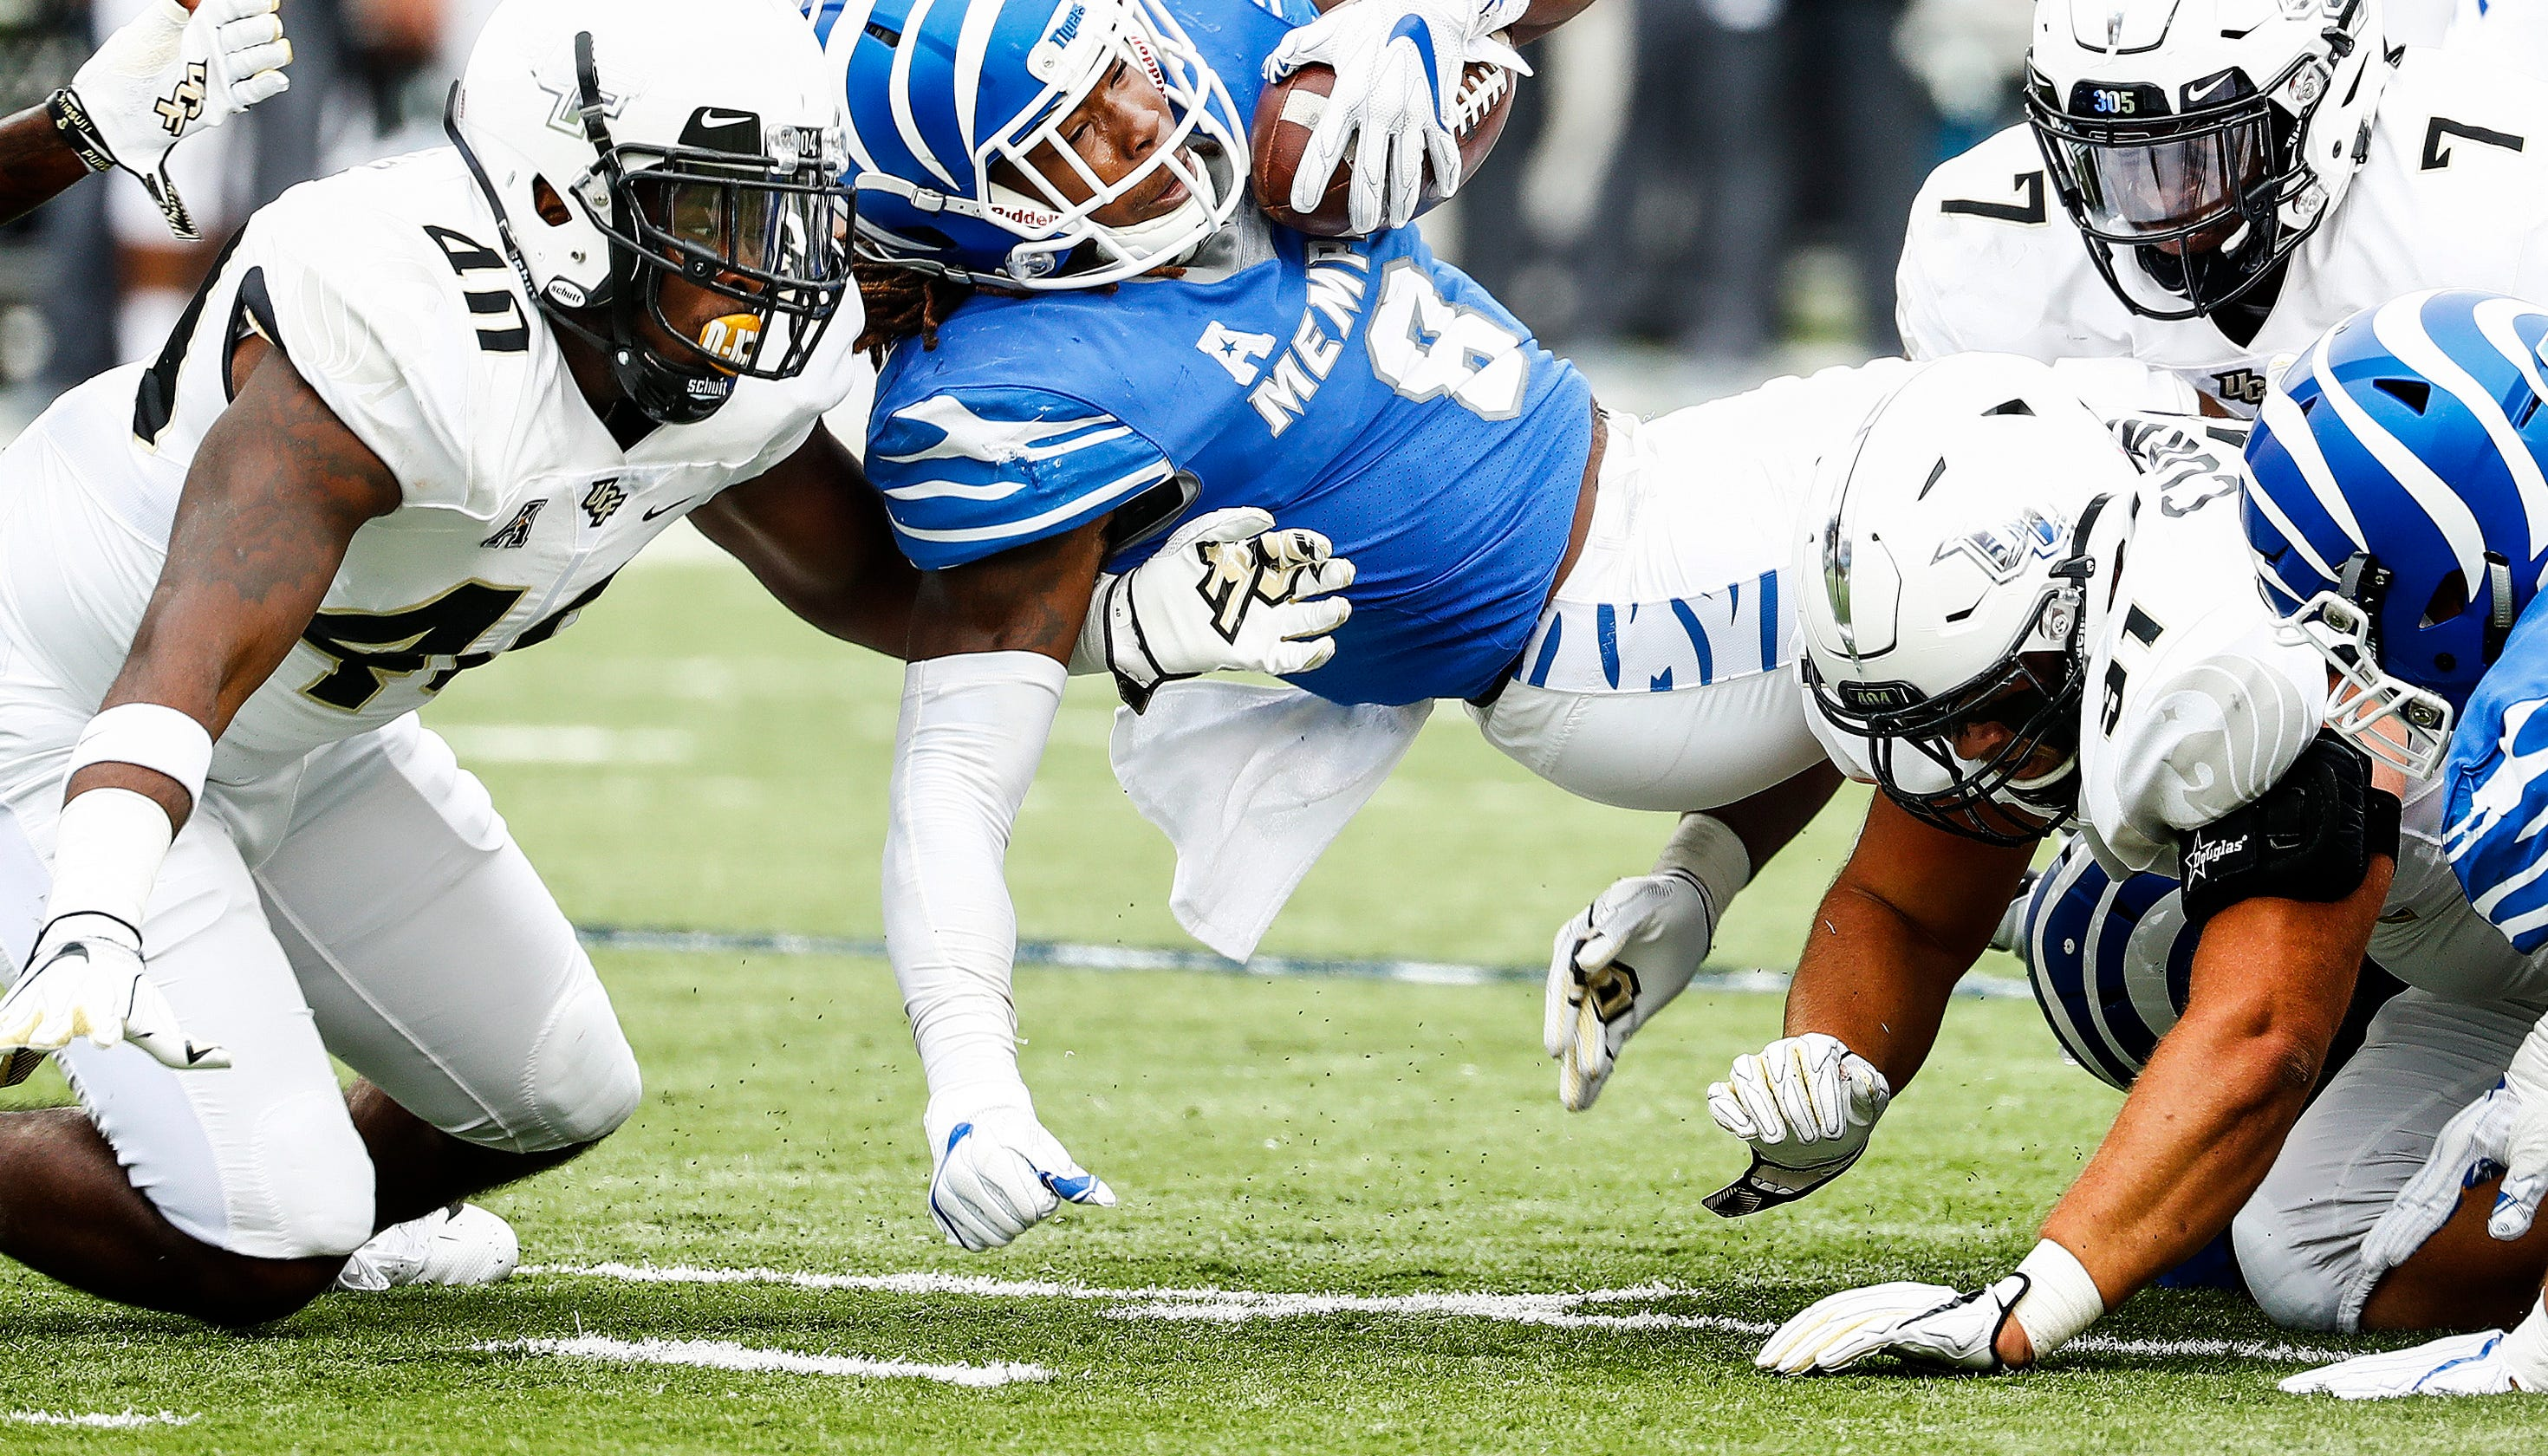 Memphis football vs UCF  Tigers  upset collapses a5b3a22ed